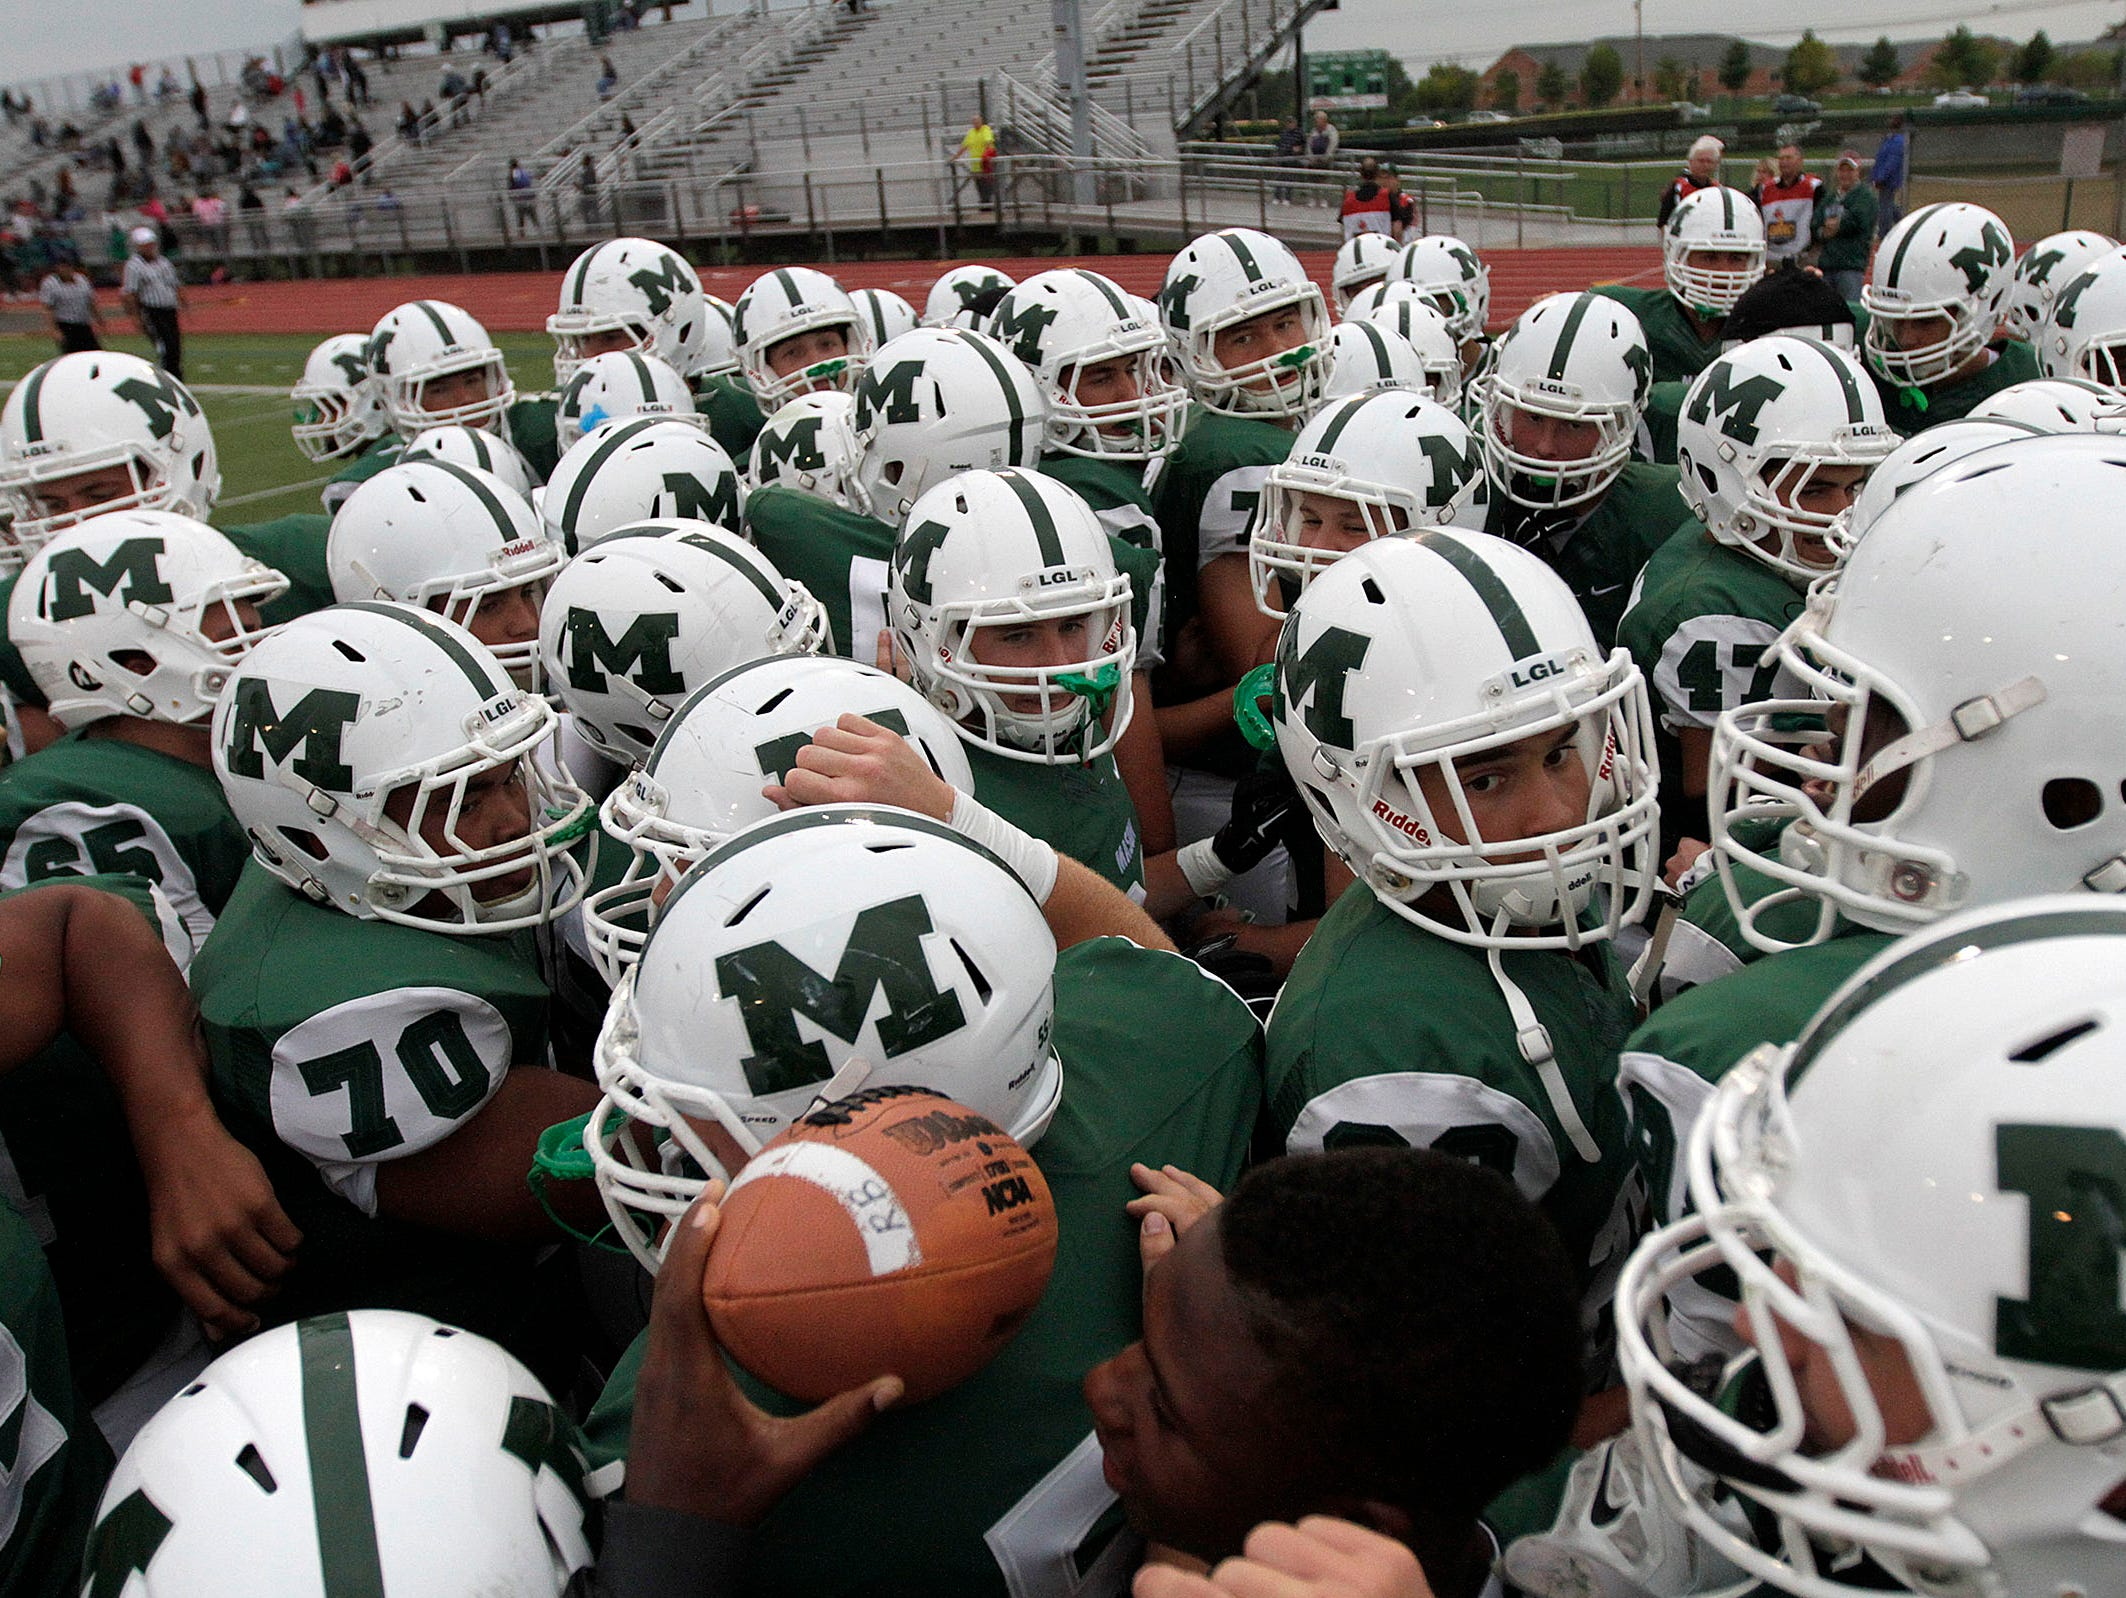 The Mason Comets get pumped up before their game against Winton Woods.